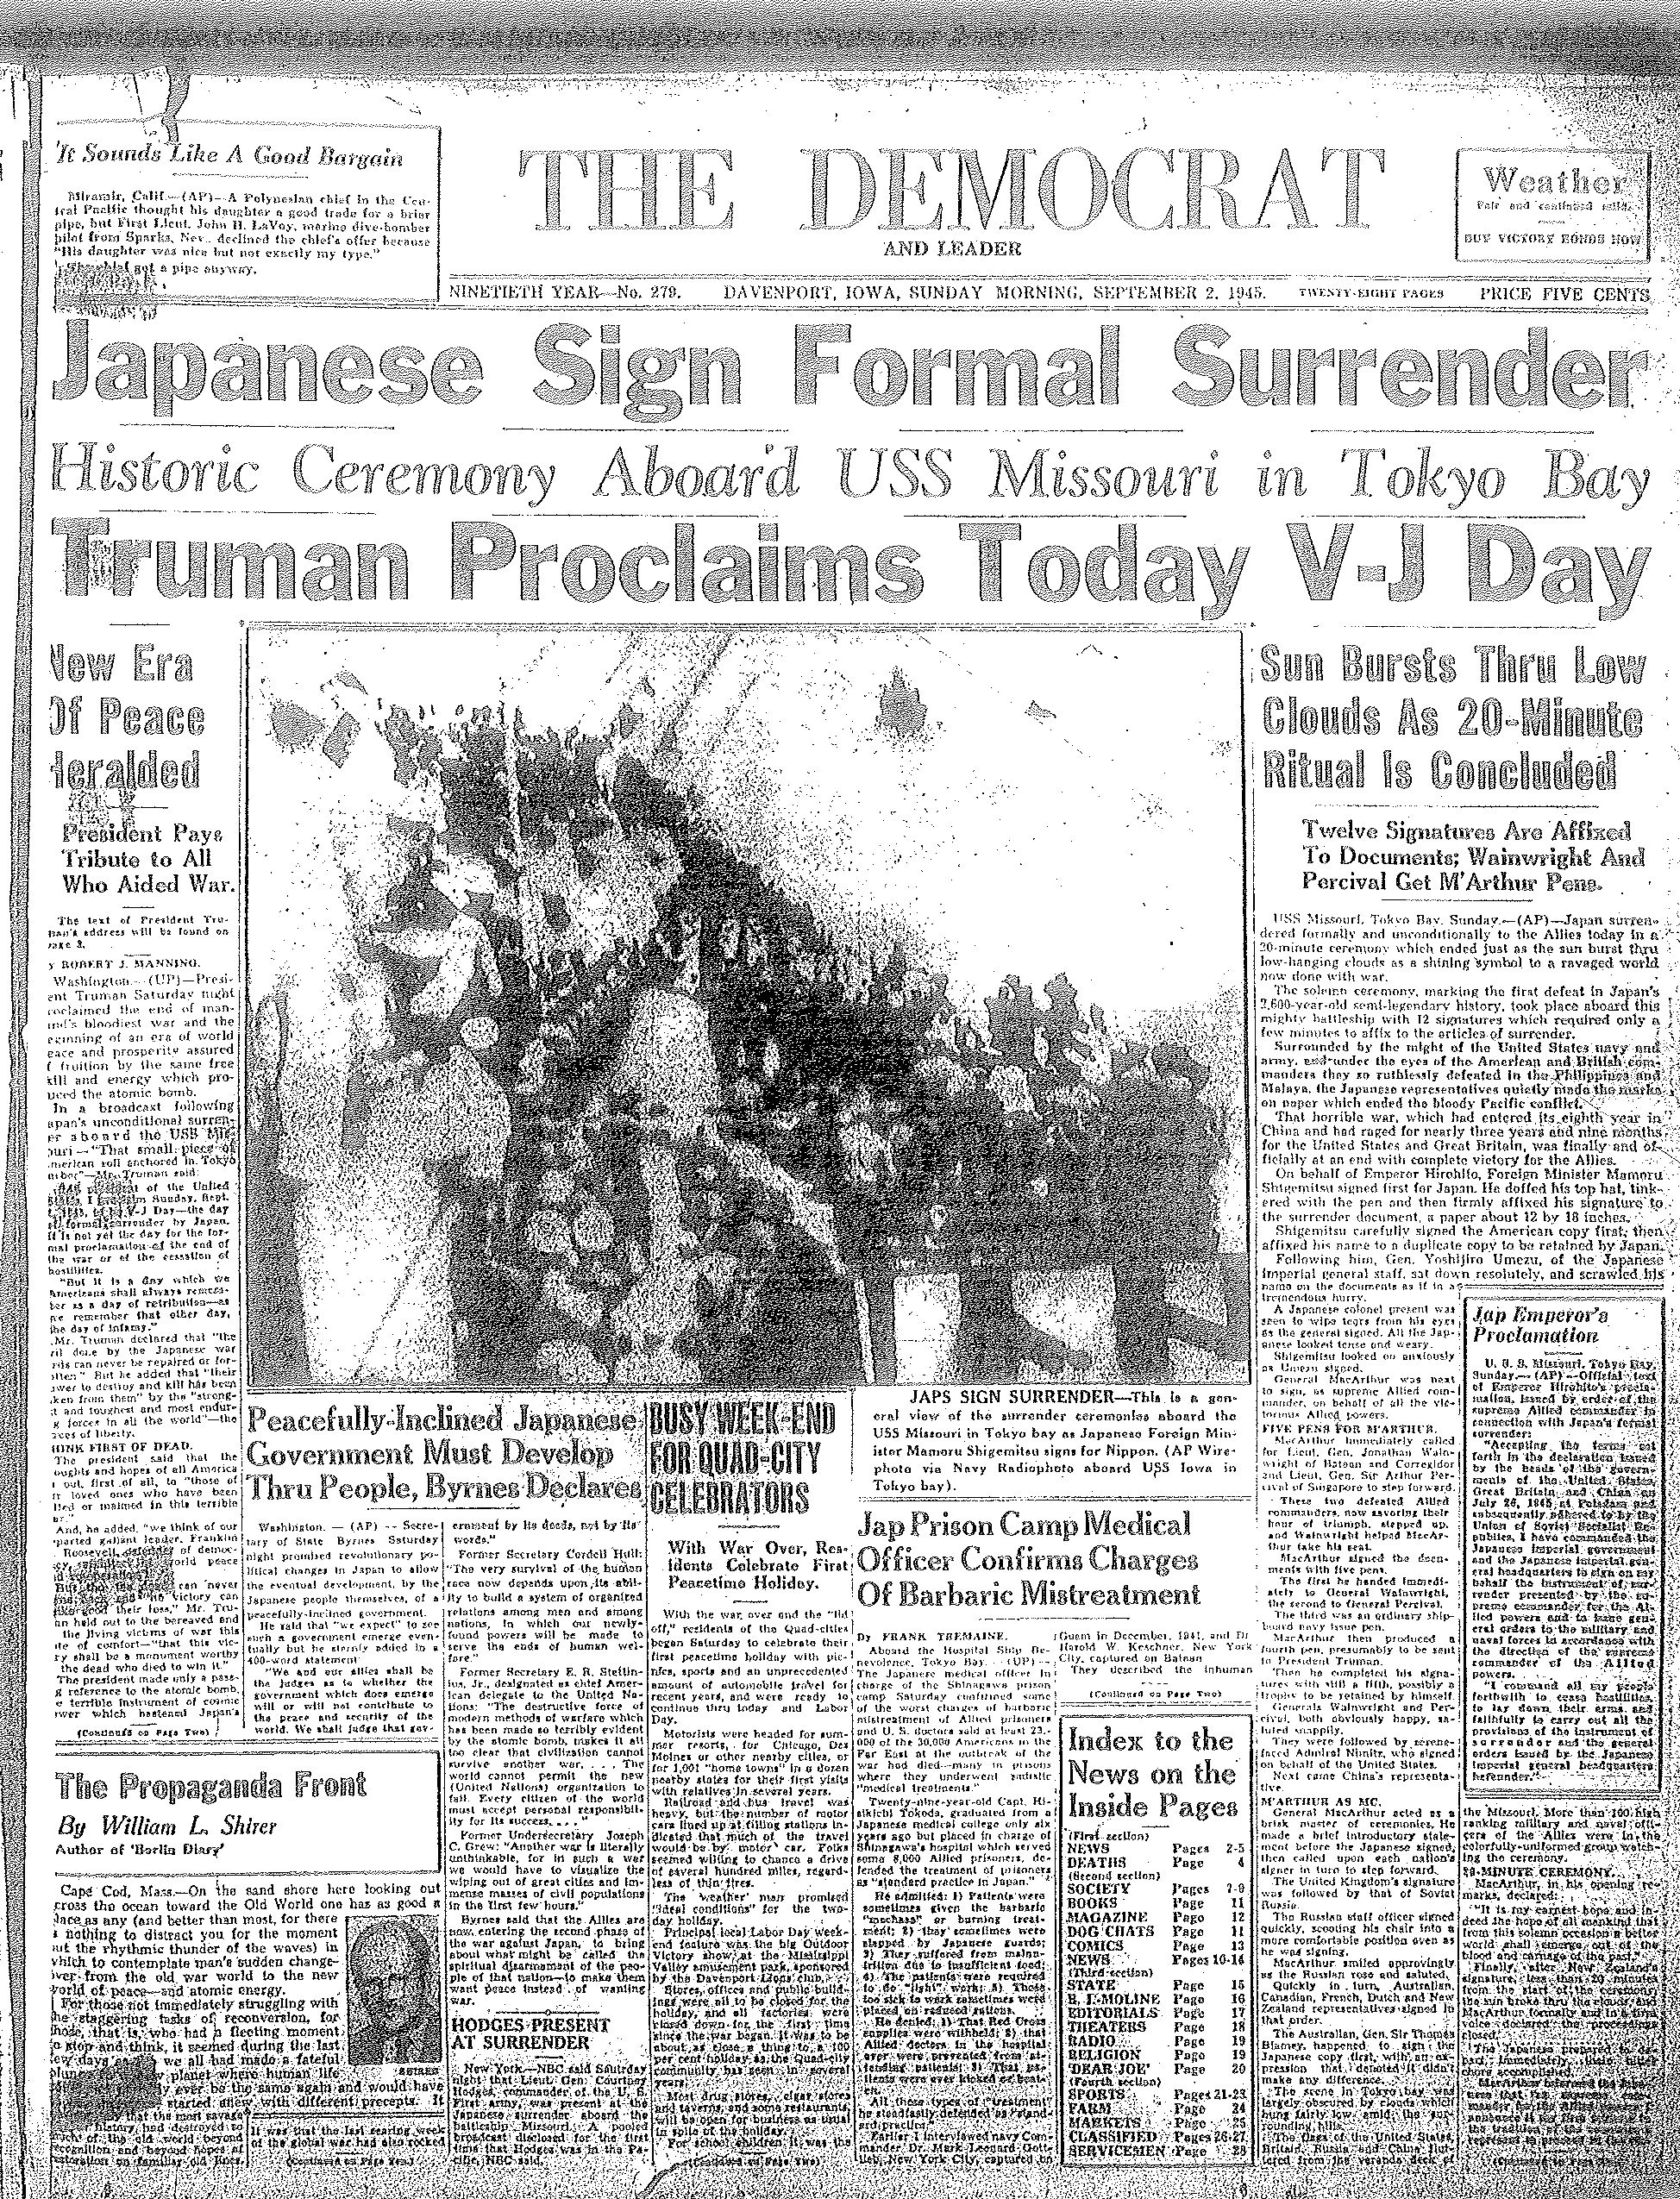 The Japanese Surrender In World War Ii